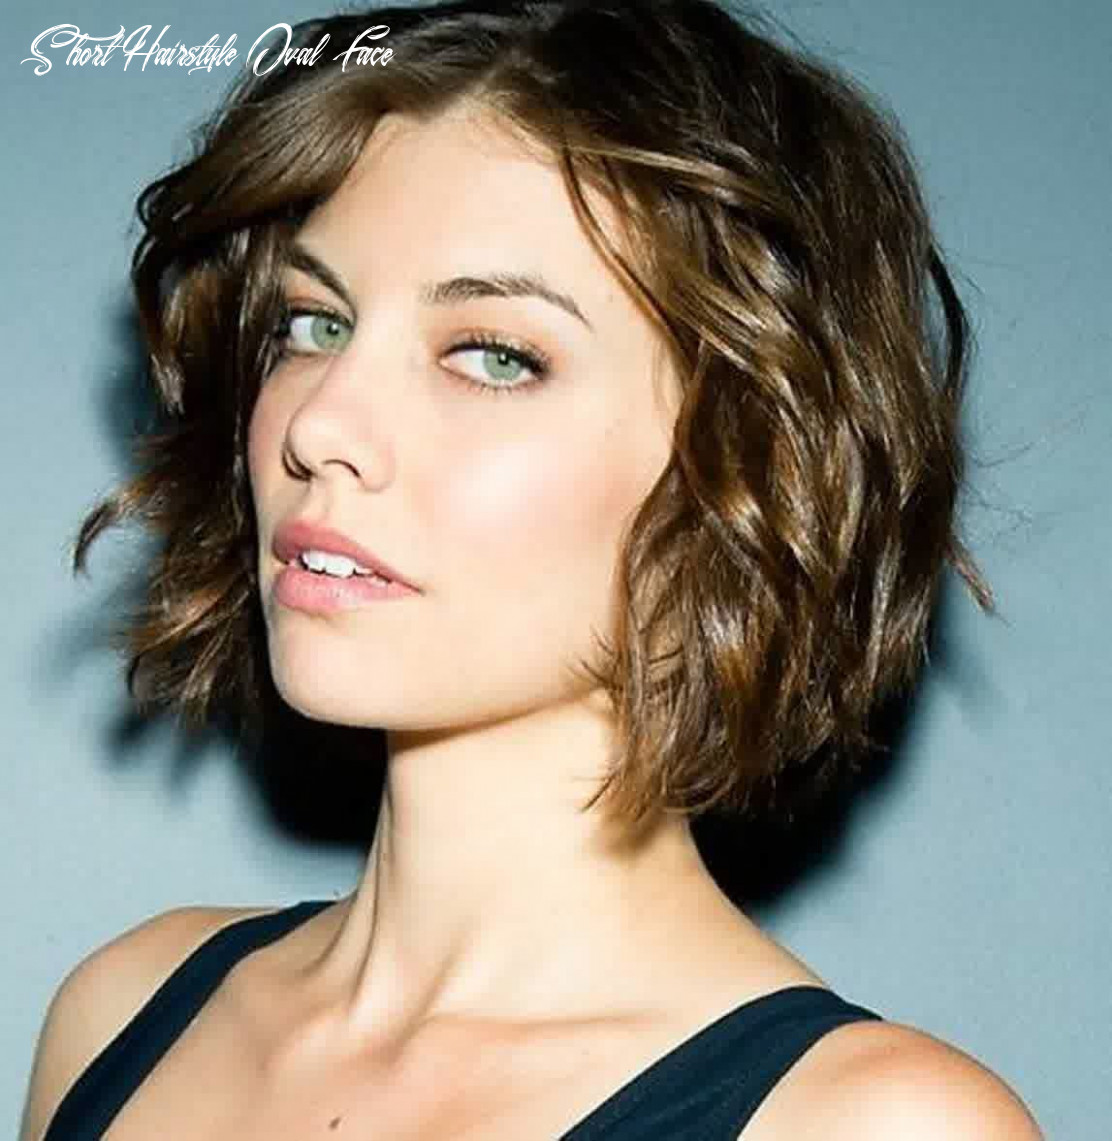 Short Hairstyles For Oval Faces With Wavy Hair | Short wavy ...